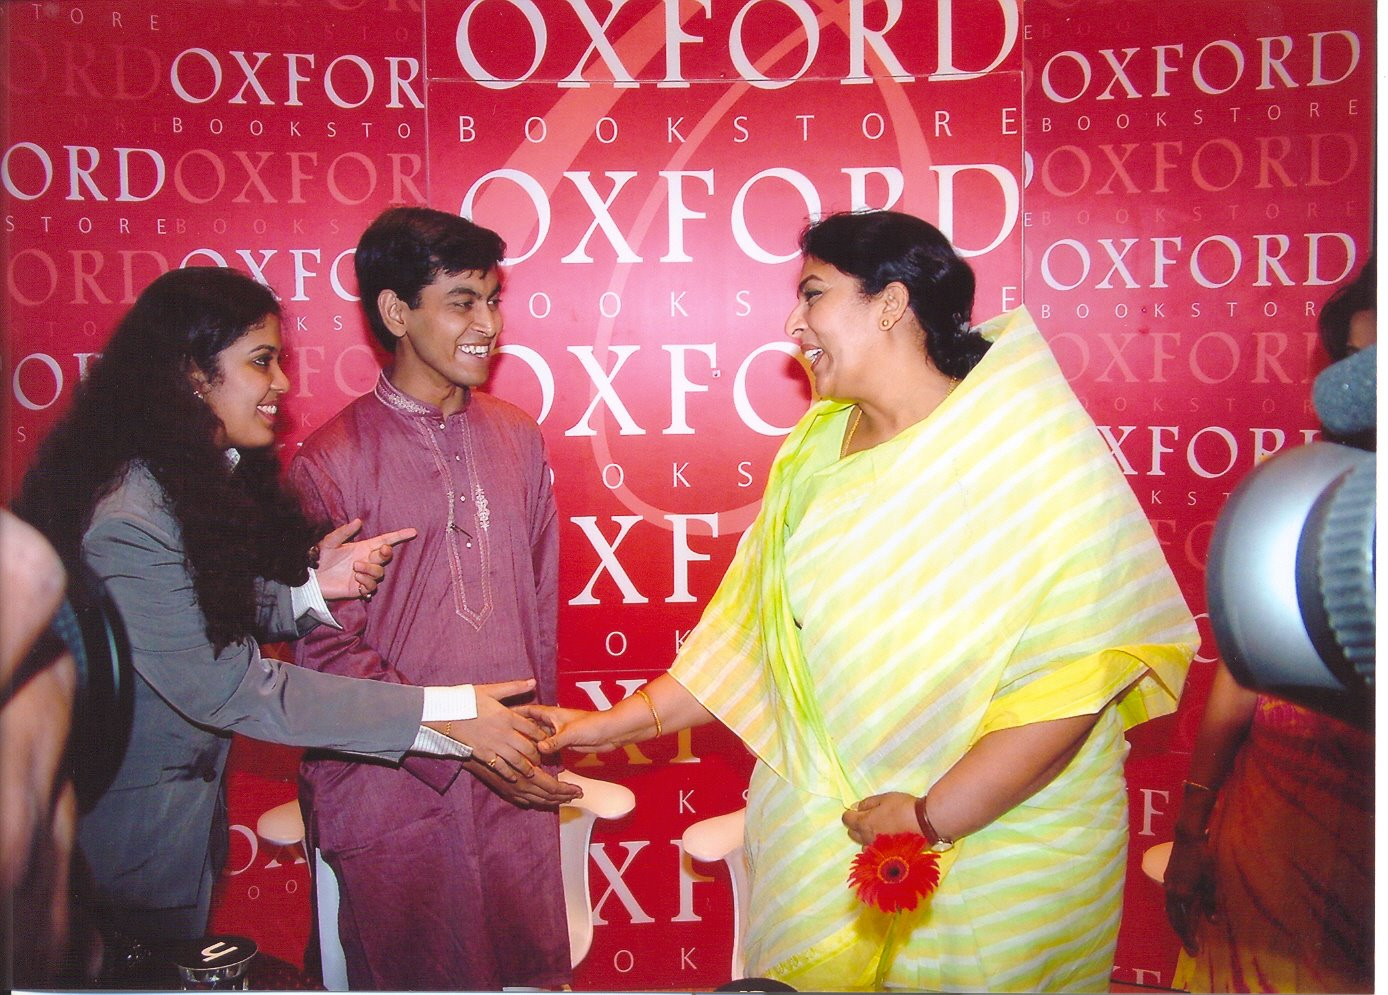 OXFORD BOOKSTORES.NEW DELHI. 2005 - THE VOYAGE TO EXCELLENCE - Official book launch with Congress official Renuka Chowdhury, Union Minister for Women and Child Welfare at the time.